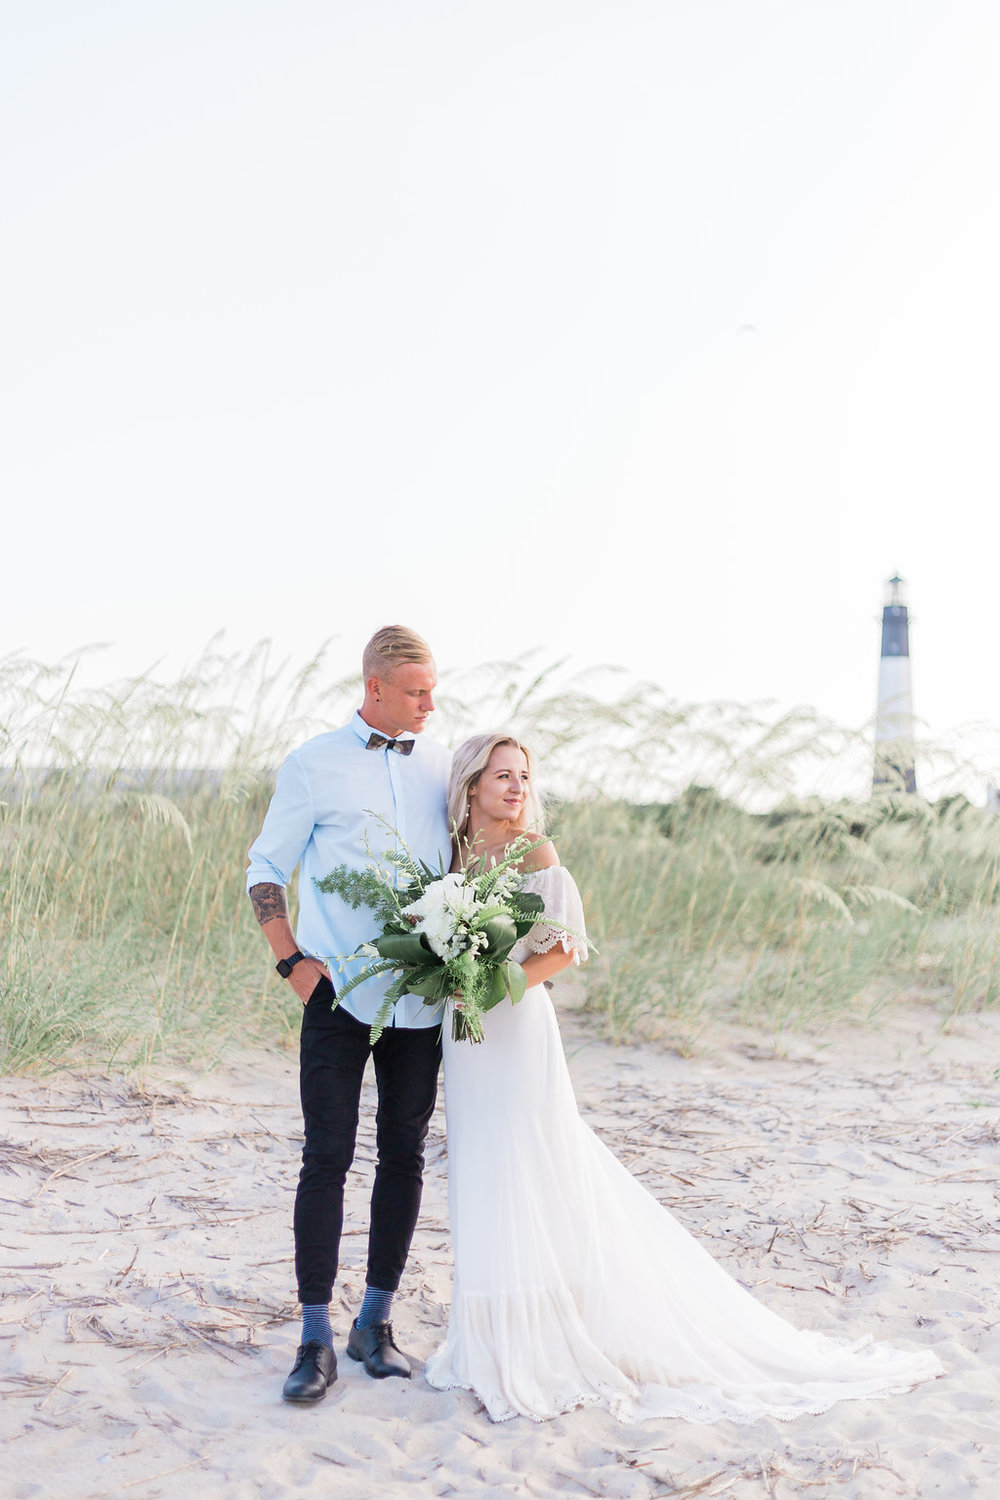 savannah-bridal-shop-last-minute-wedding-planning-details-you-should-start-on-NOW-bluebell-photography-daughters-of-simone-tybee-island-wedding-1.jpg